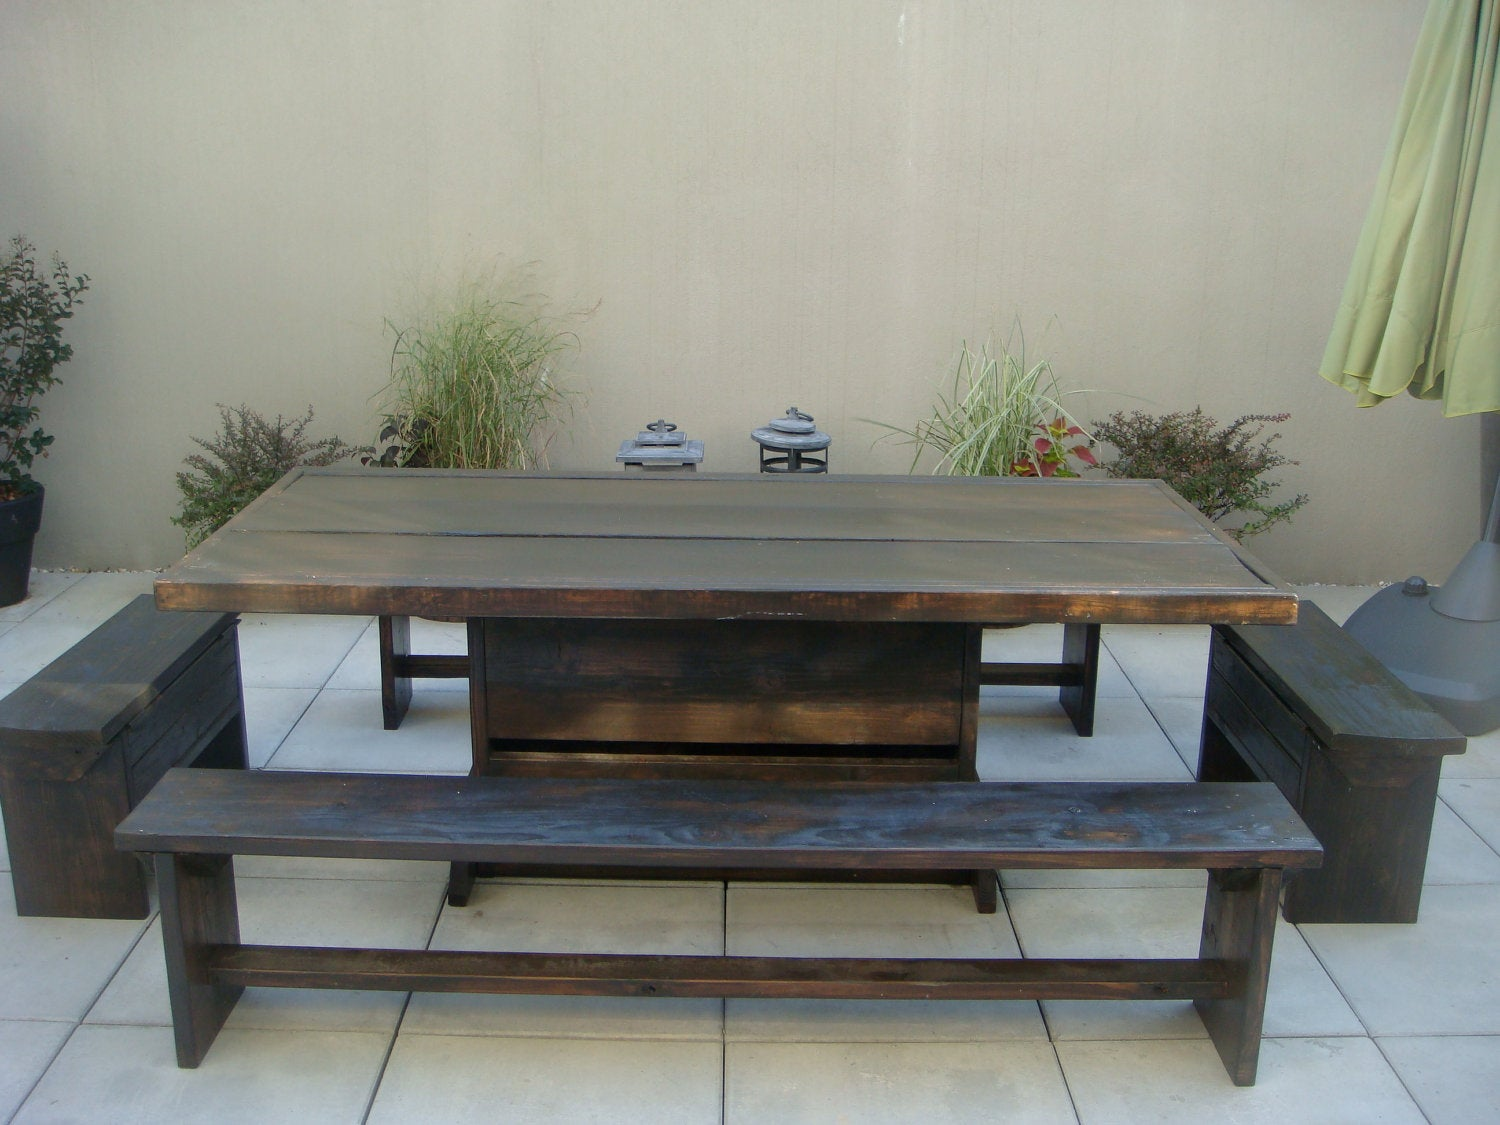 5 39 PATIO SET OUTDOOR DINING TABLE WITH BENCHES ModernRust